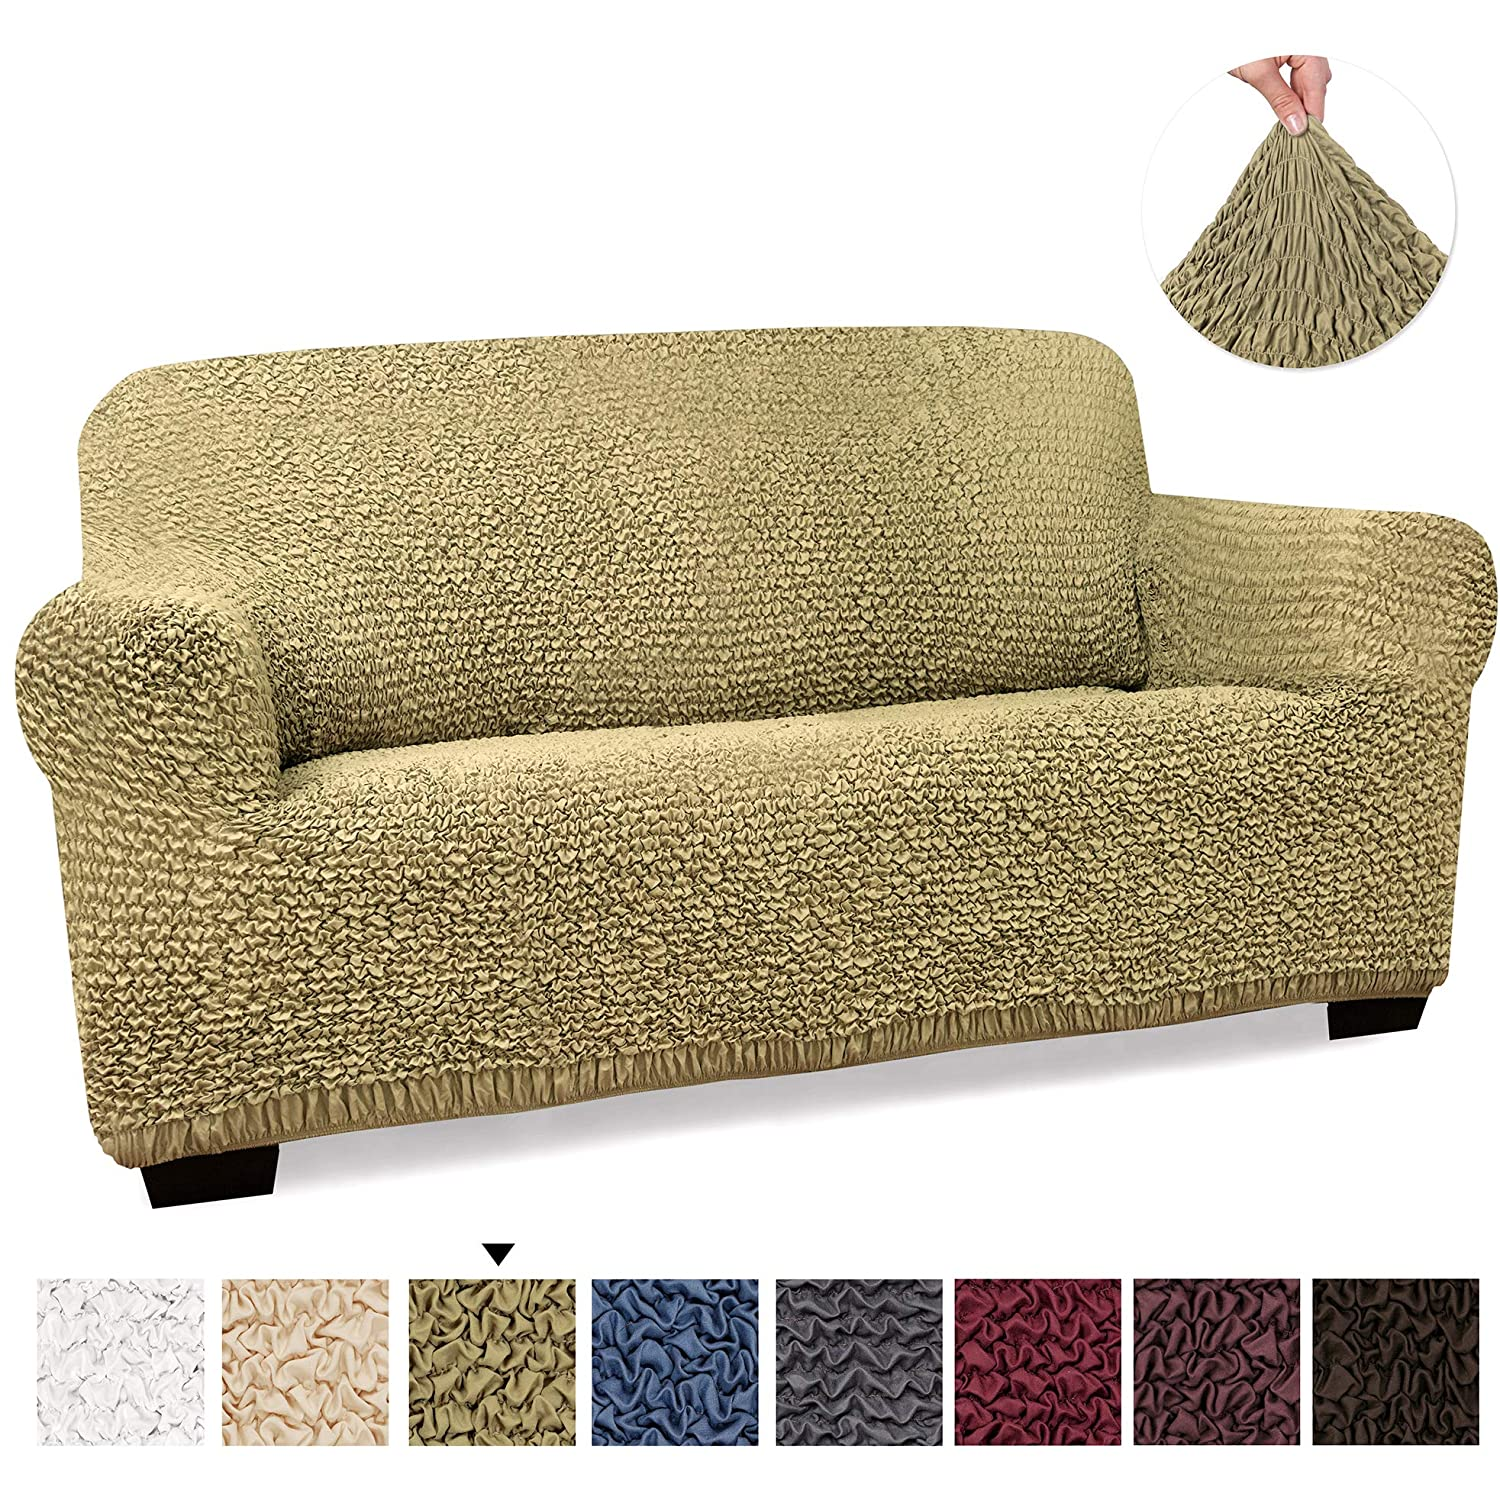 Loveseat Cover - Loveseat Slipcovers - Loveseat Couch Covers - Soft Polyester Fabric Slipcovers - 1-piece Form Fit Stretch Stylish Furniture Cover - ...